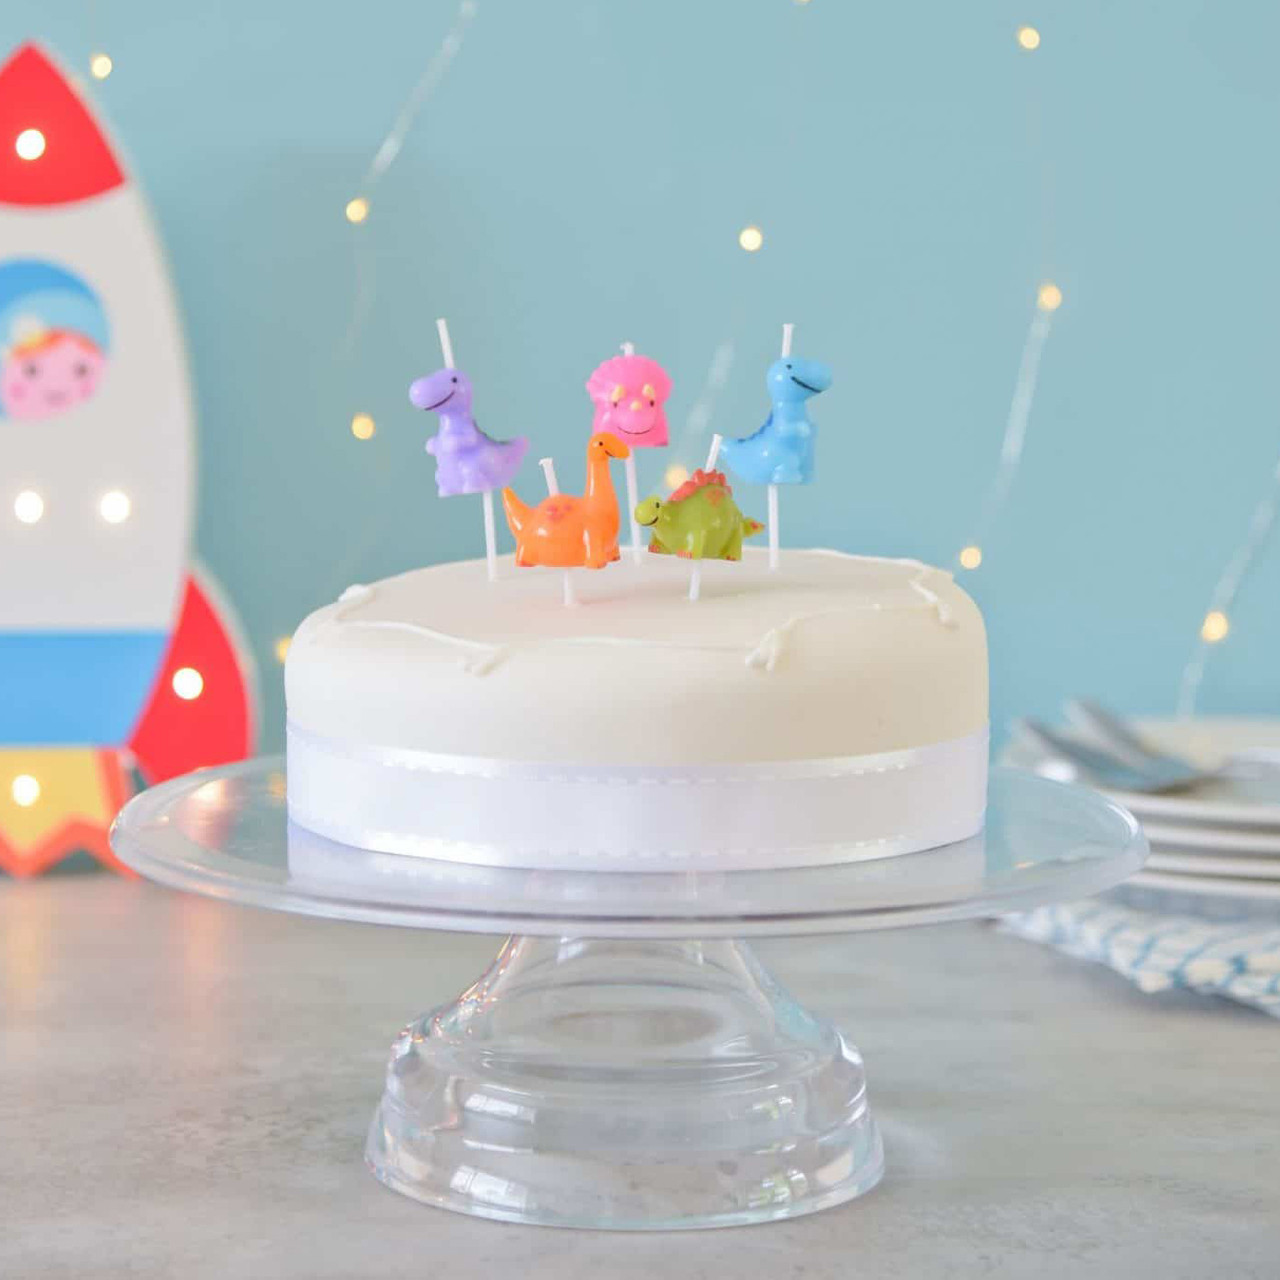 Peachy Dinosaur Birthday Cake Candles For Childrens Parties And Celebrations Funny Birthday Cards Online Inifodamsfinfo